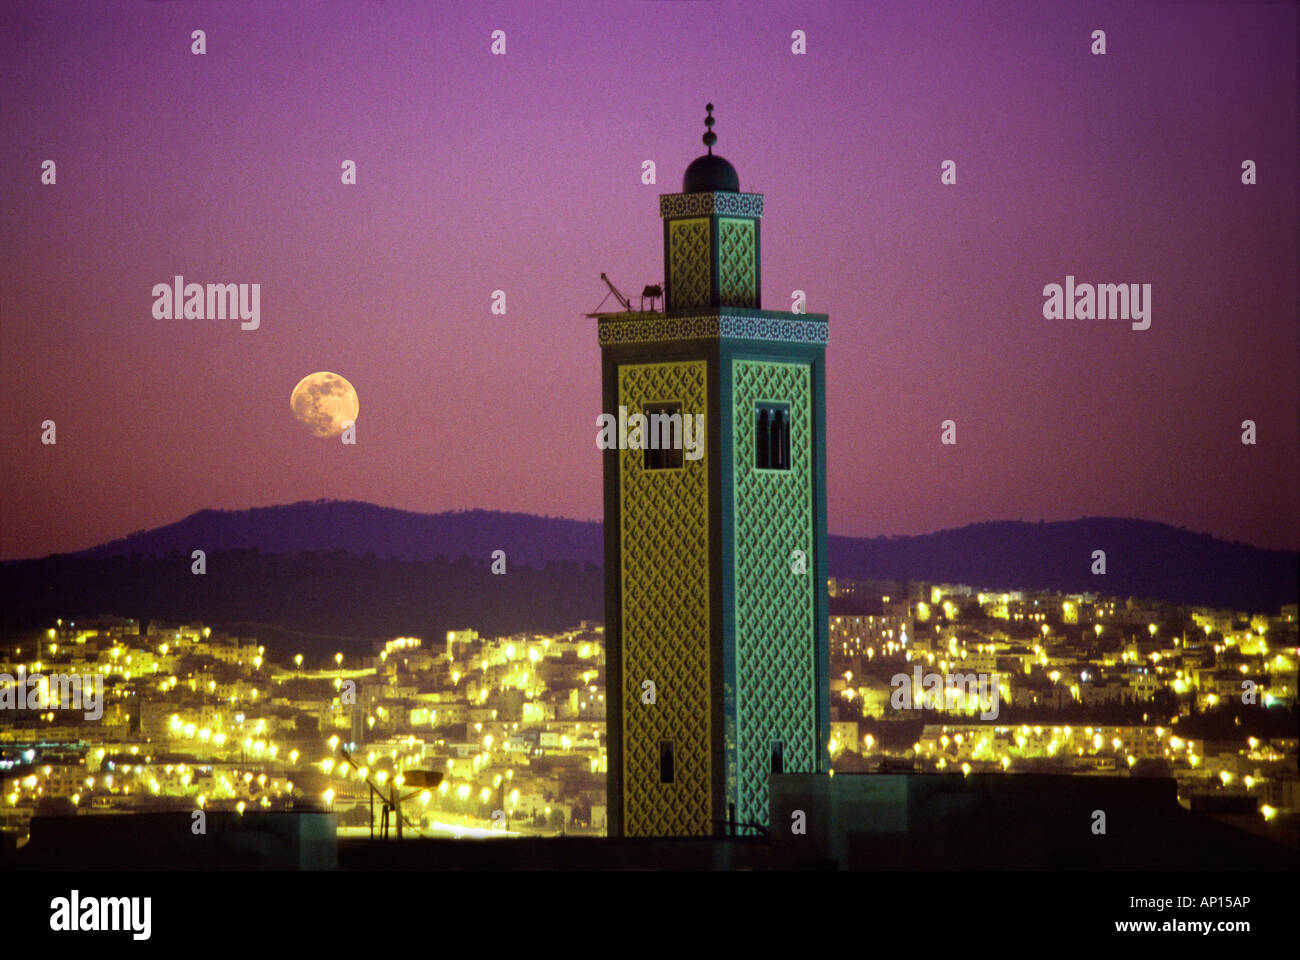 Moonrise over mosque, Fes, Morocco, North Africa - Stock Image